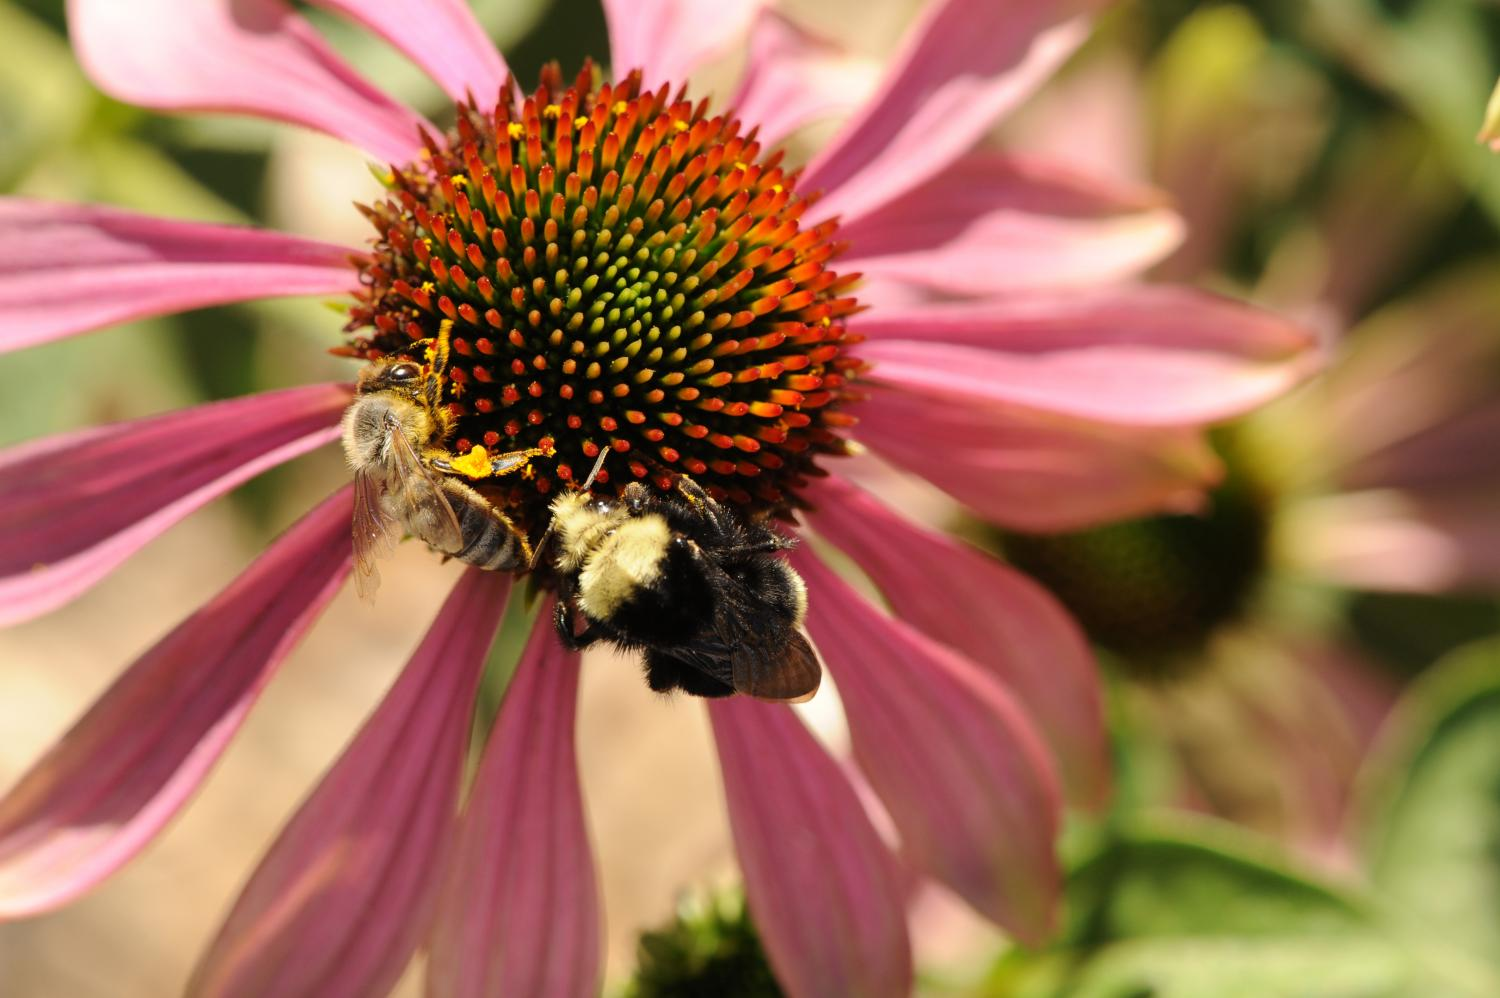 Flowers can endanger bees: Study shows flowers serve as parasite ...